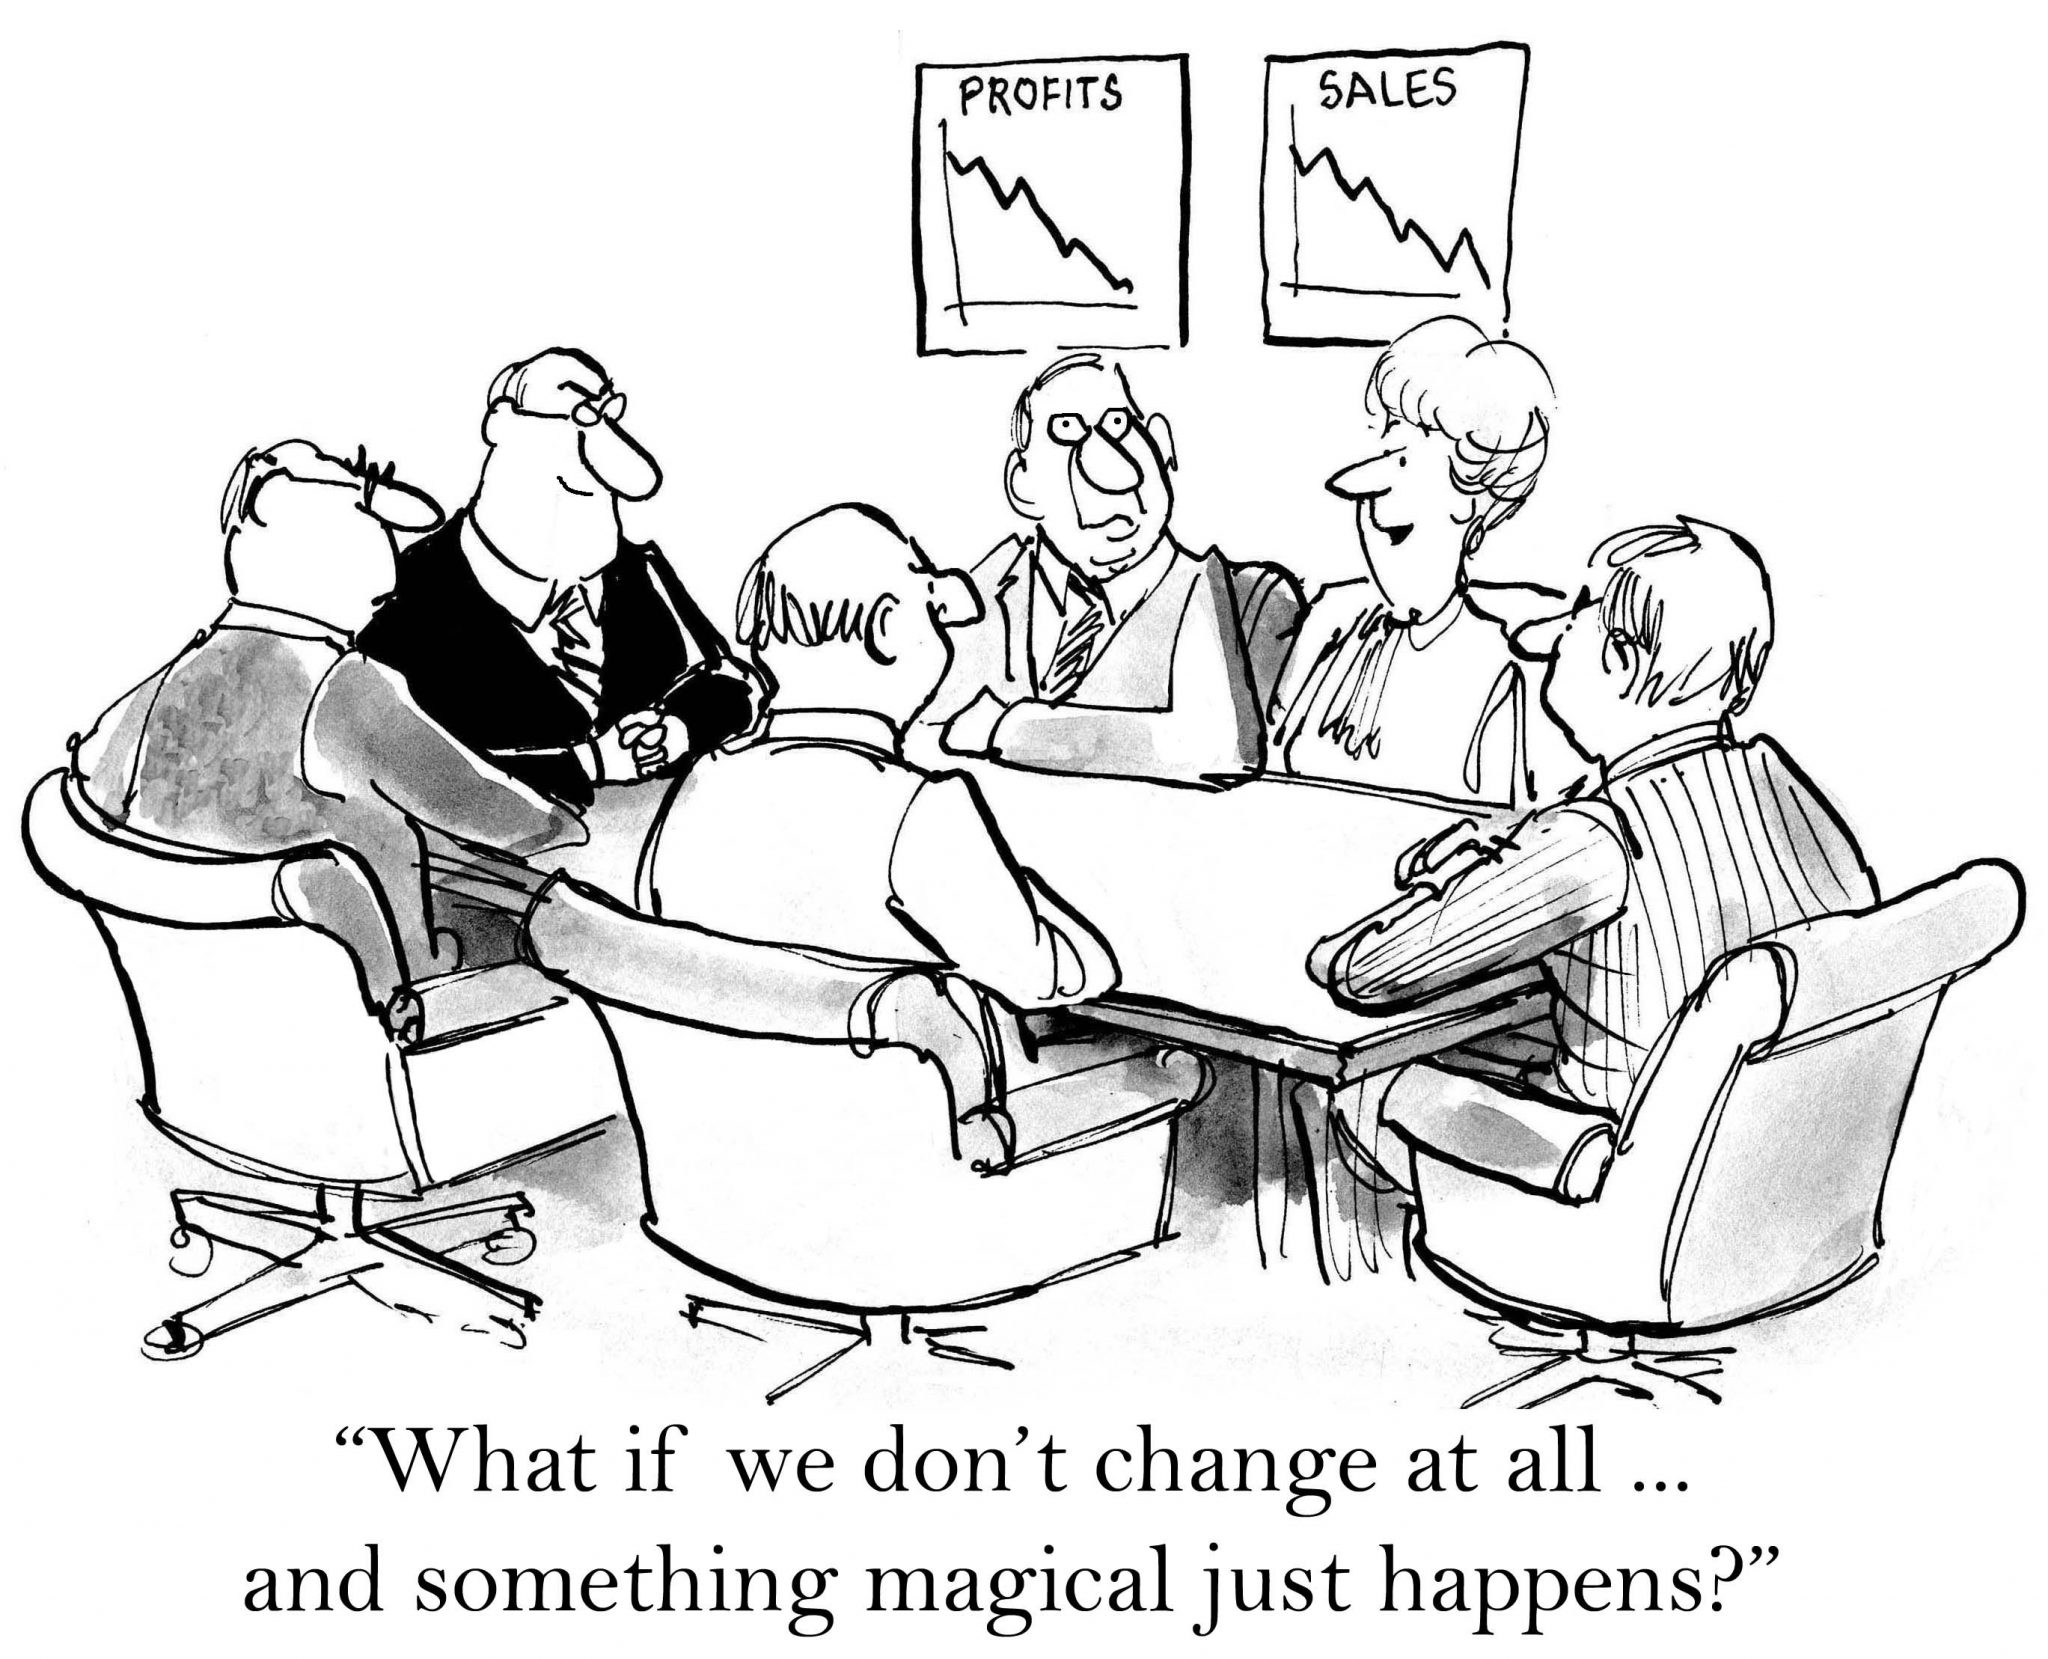 A cartoon that recommends magic instead of what we know works to Better Lead Organizational Change